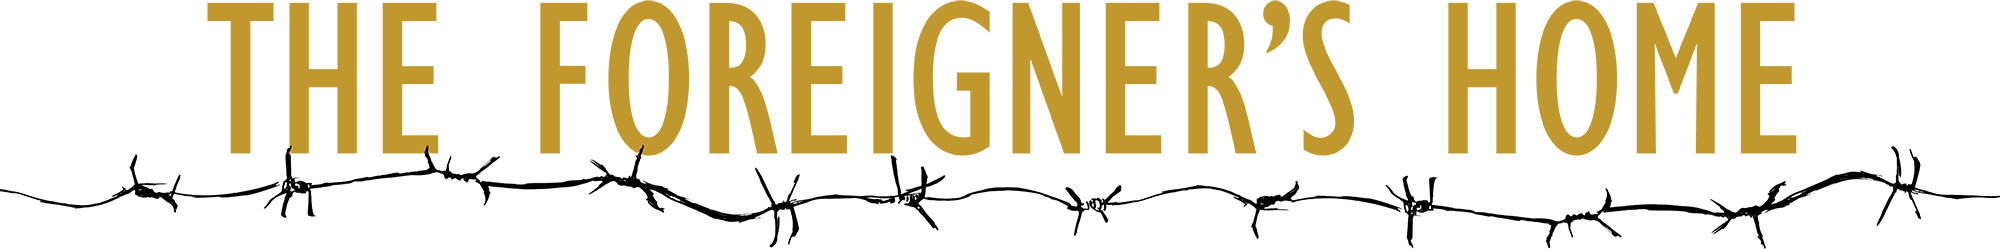 Foreigners Home Logo.png